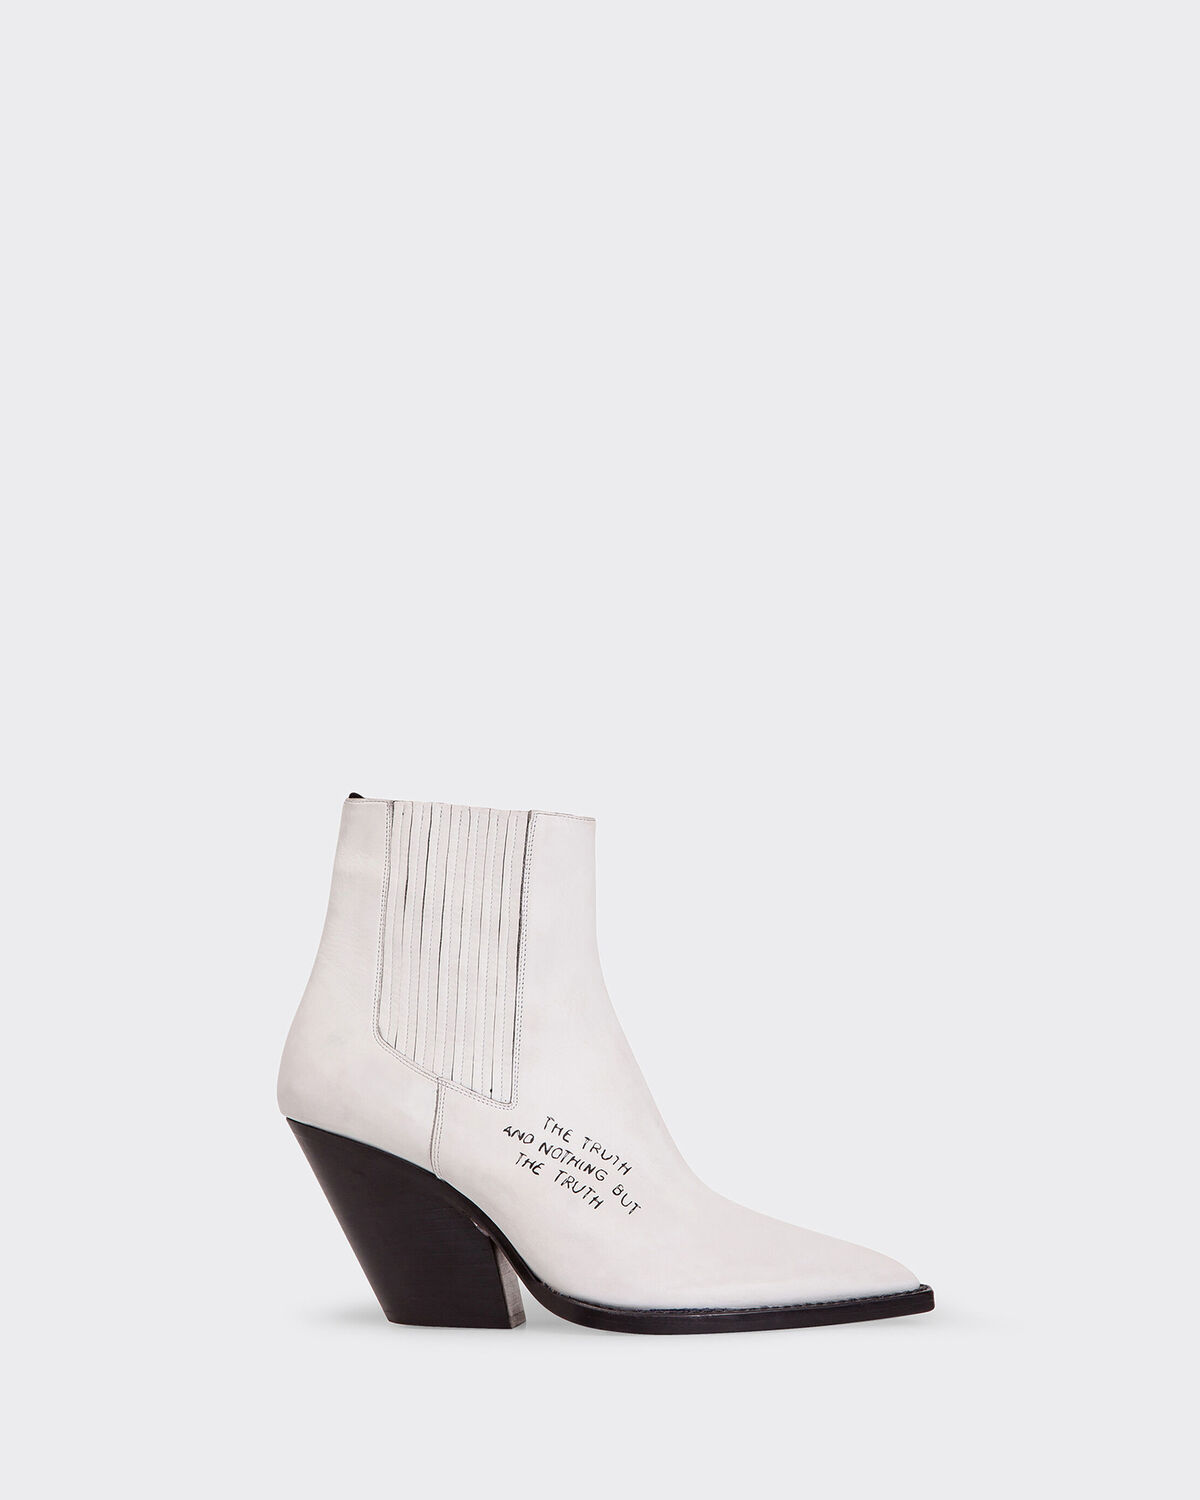 Thetruth Boots in White from IRO